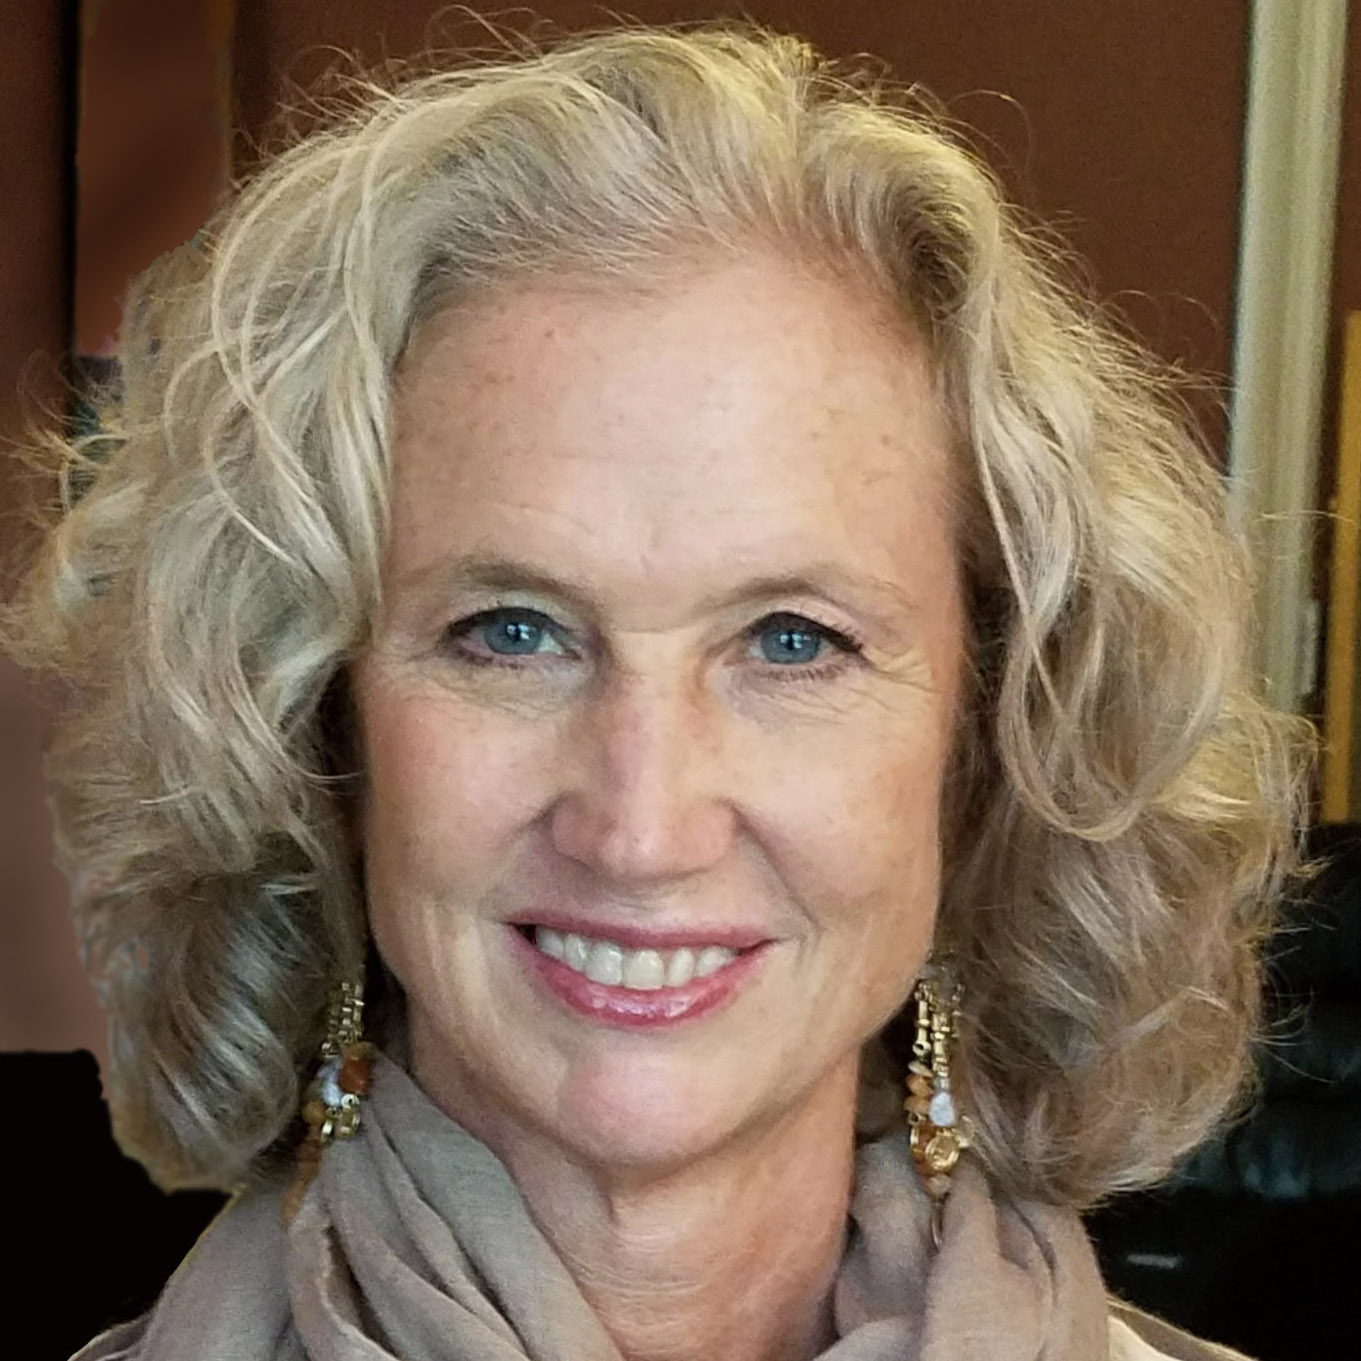 Deborah Roth   Joined 2009 - Alto 1   Life/Career Transition Coach, Relationship Coach & Interfaith Minister. Married with 2 grown sons, she loves officiating weddings, reading, gardening and yoga. Founder of www.4thUArtivists.com